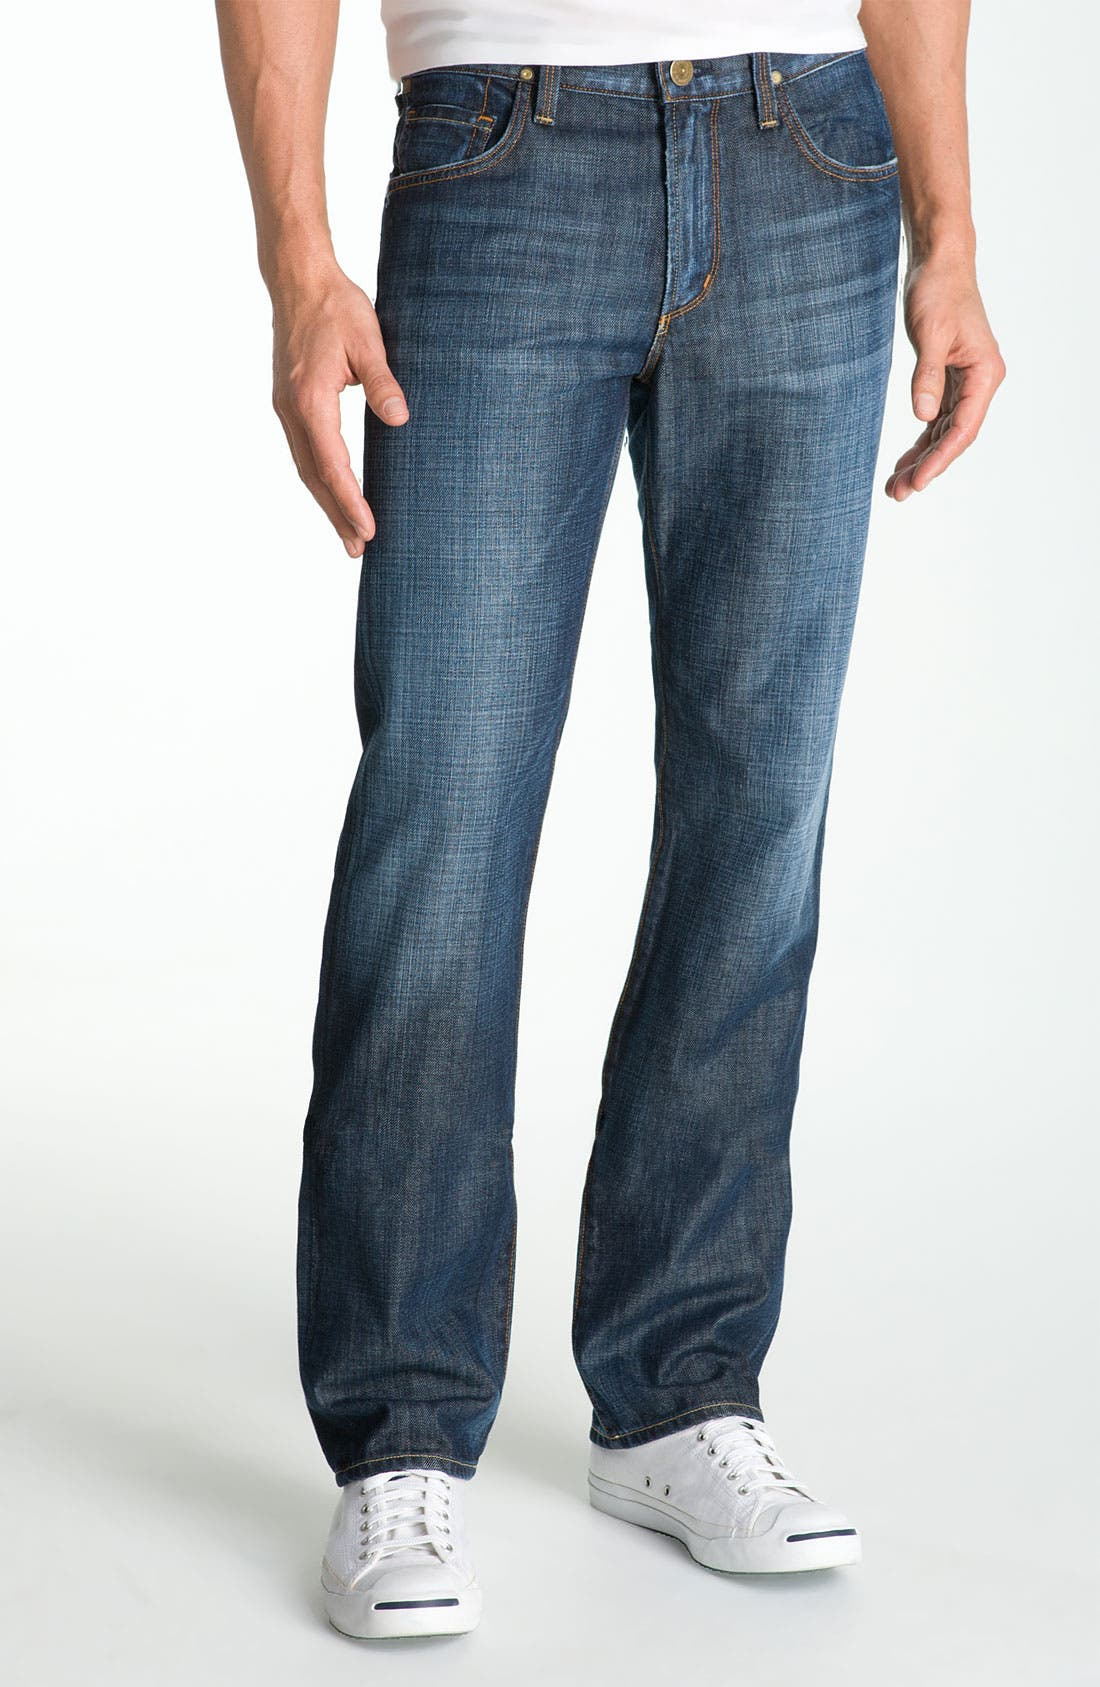 Alternate Image 1 Selected - Citizens of Humanity 'Sid' Straight Leg Jeans (Pacific Ocean) (Tall)